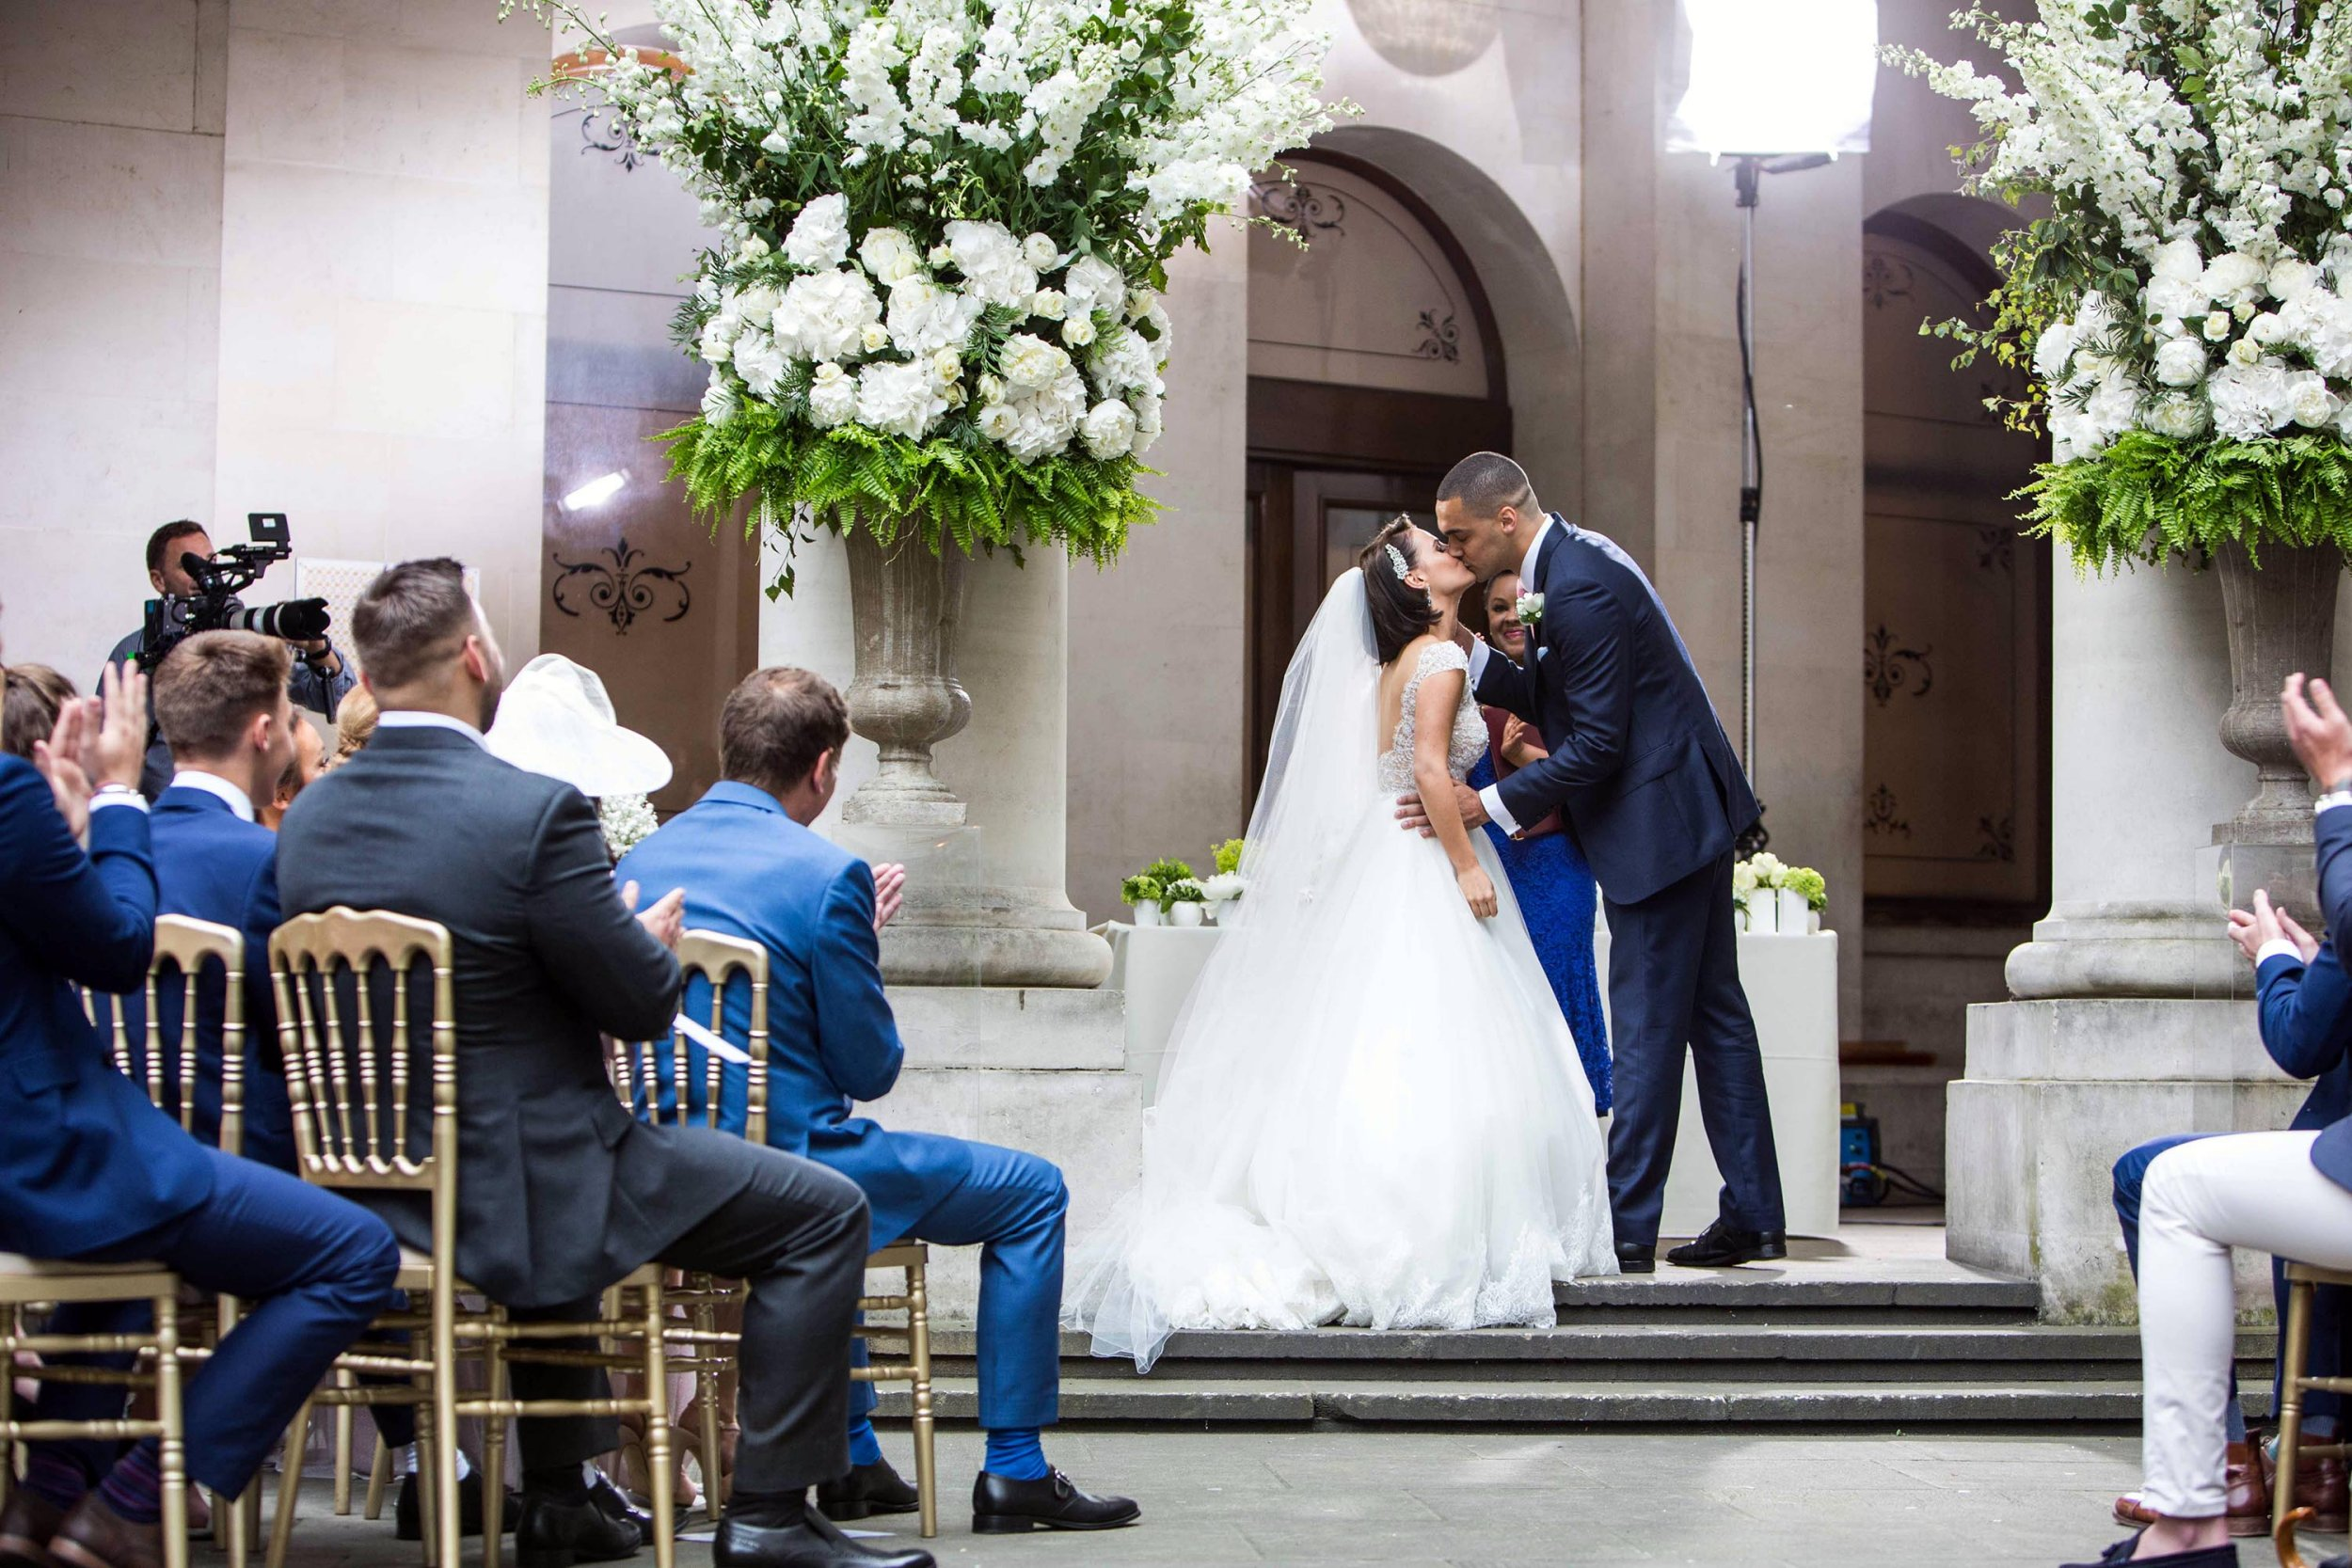 Clark Sherwood and Melissa getting married on Married At First Sight in 2016